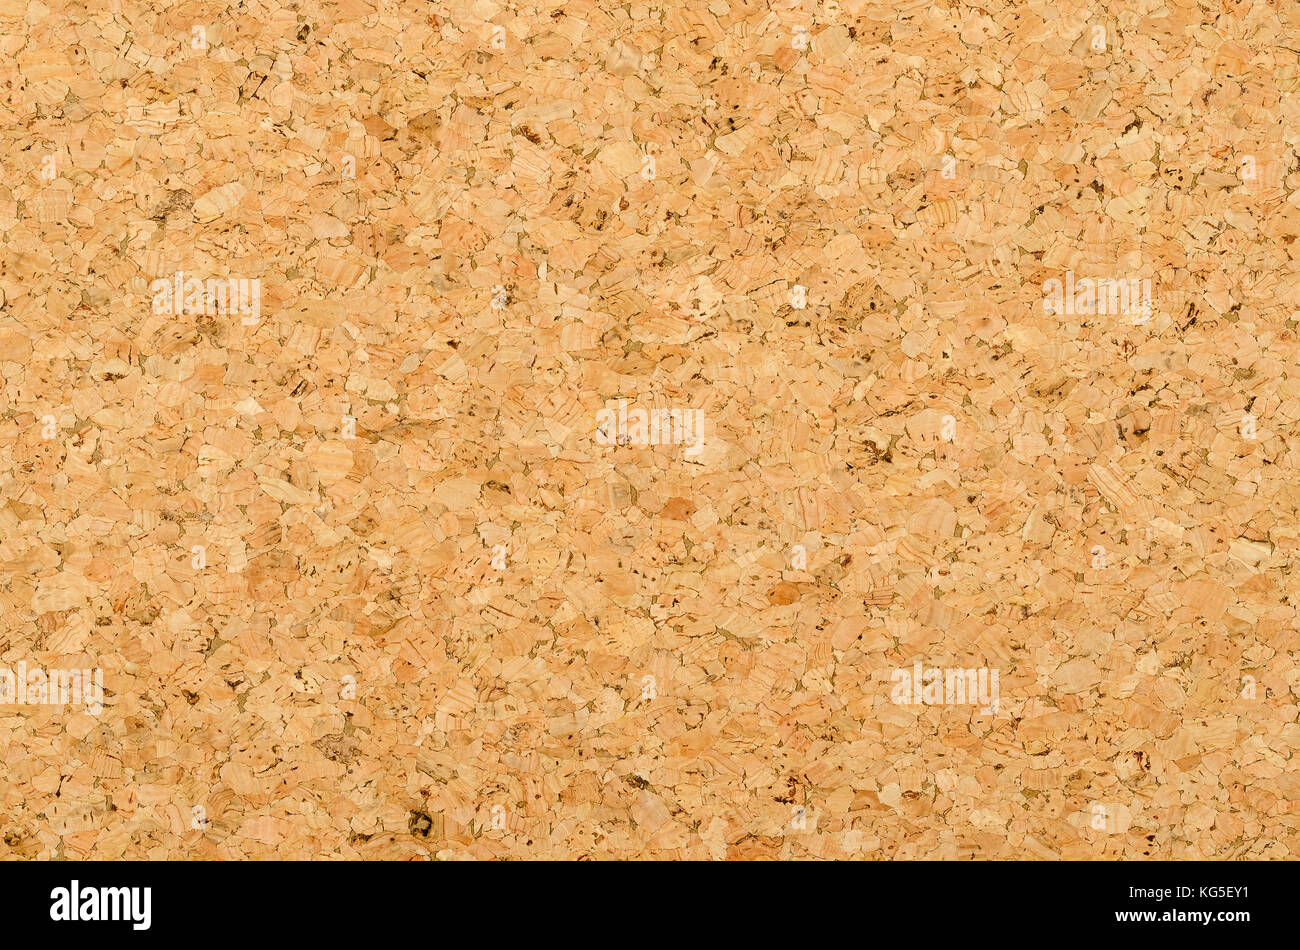 cork sheet surface with coarse texture comprised of rough grained cork oak quercus suber